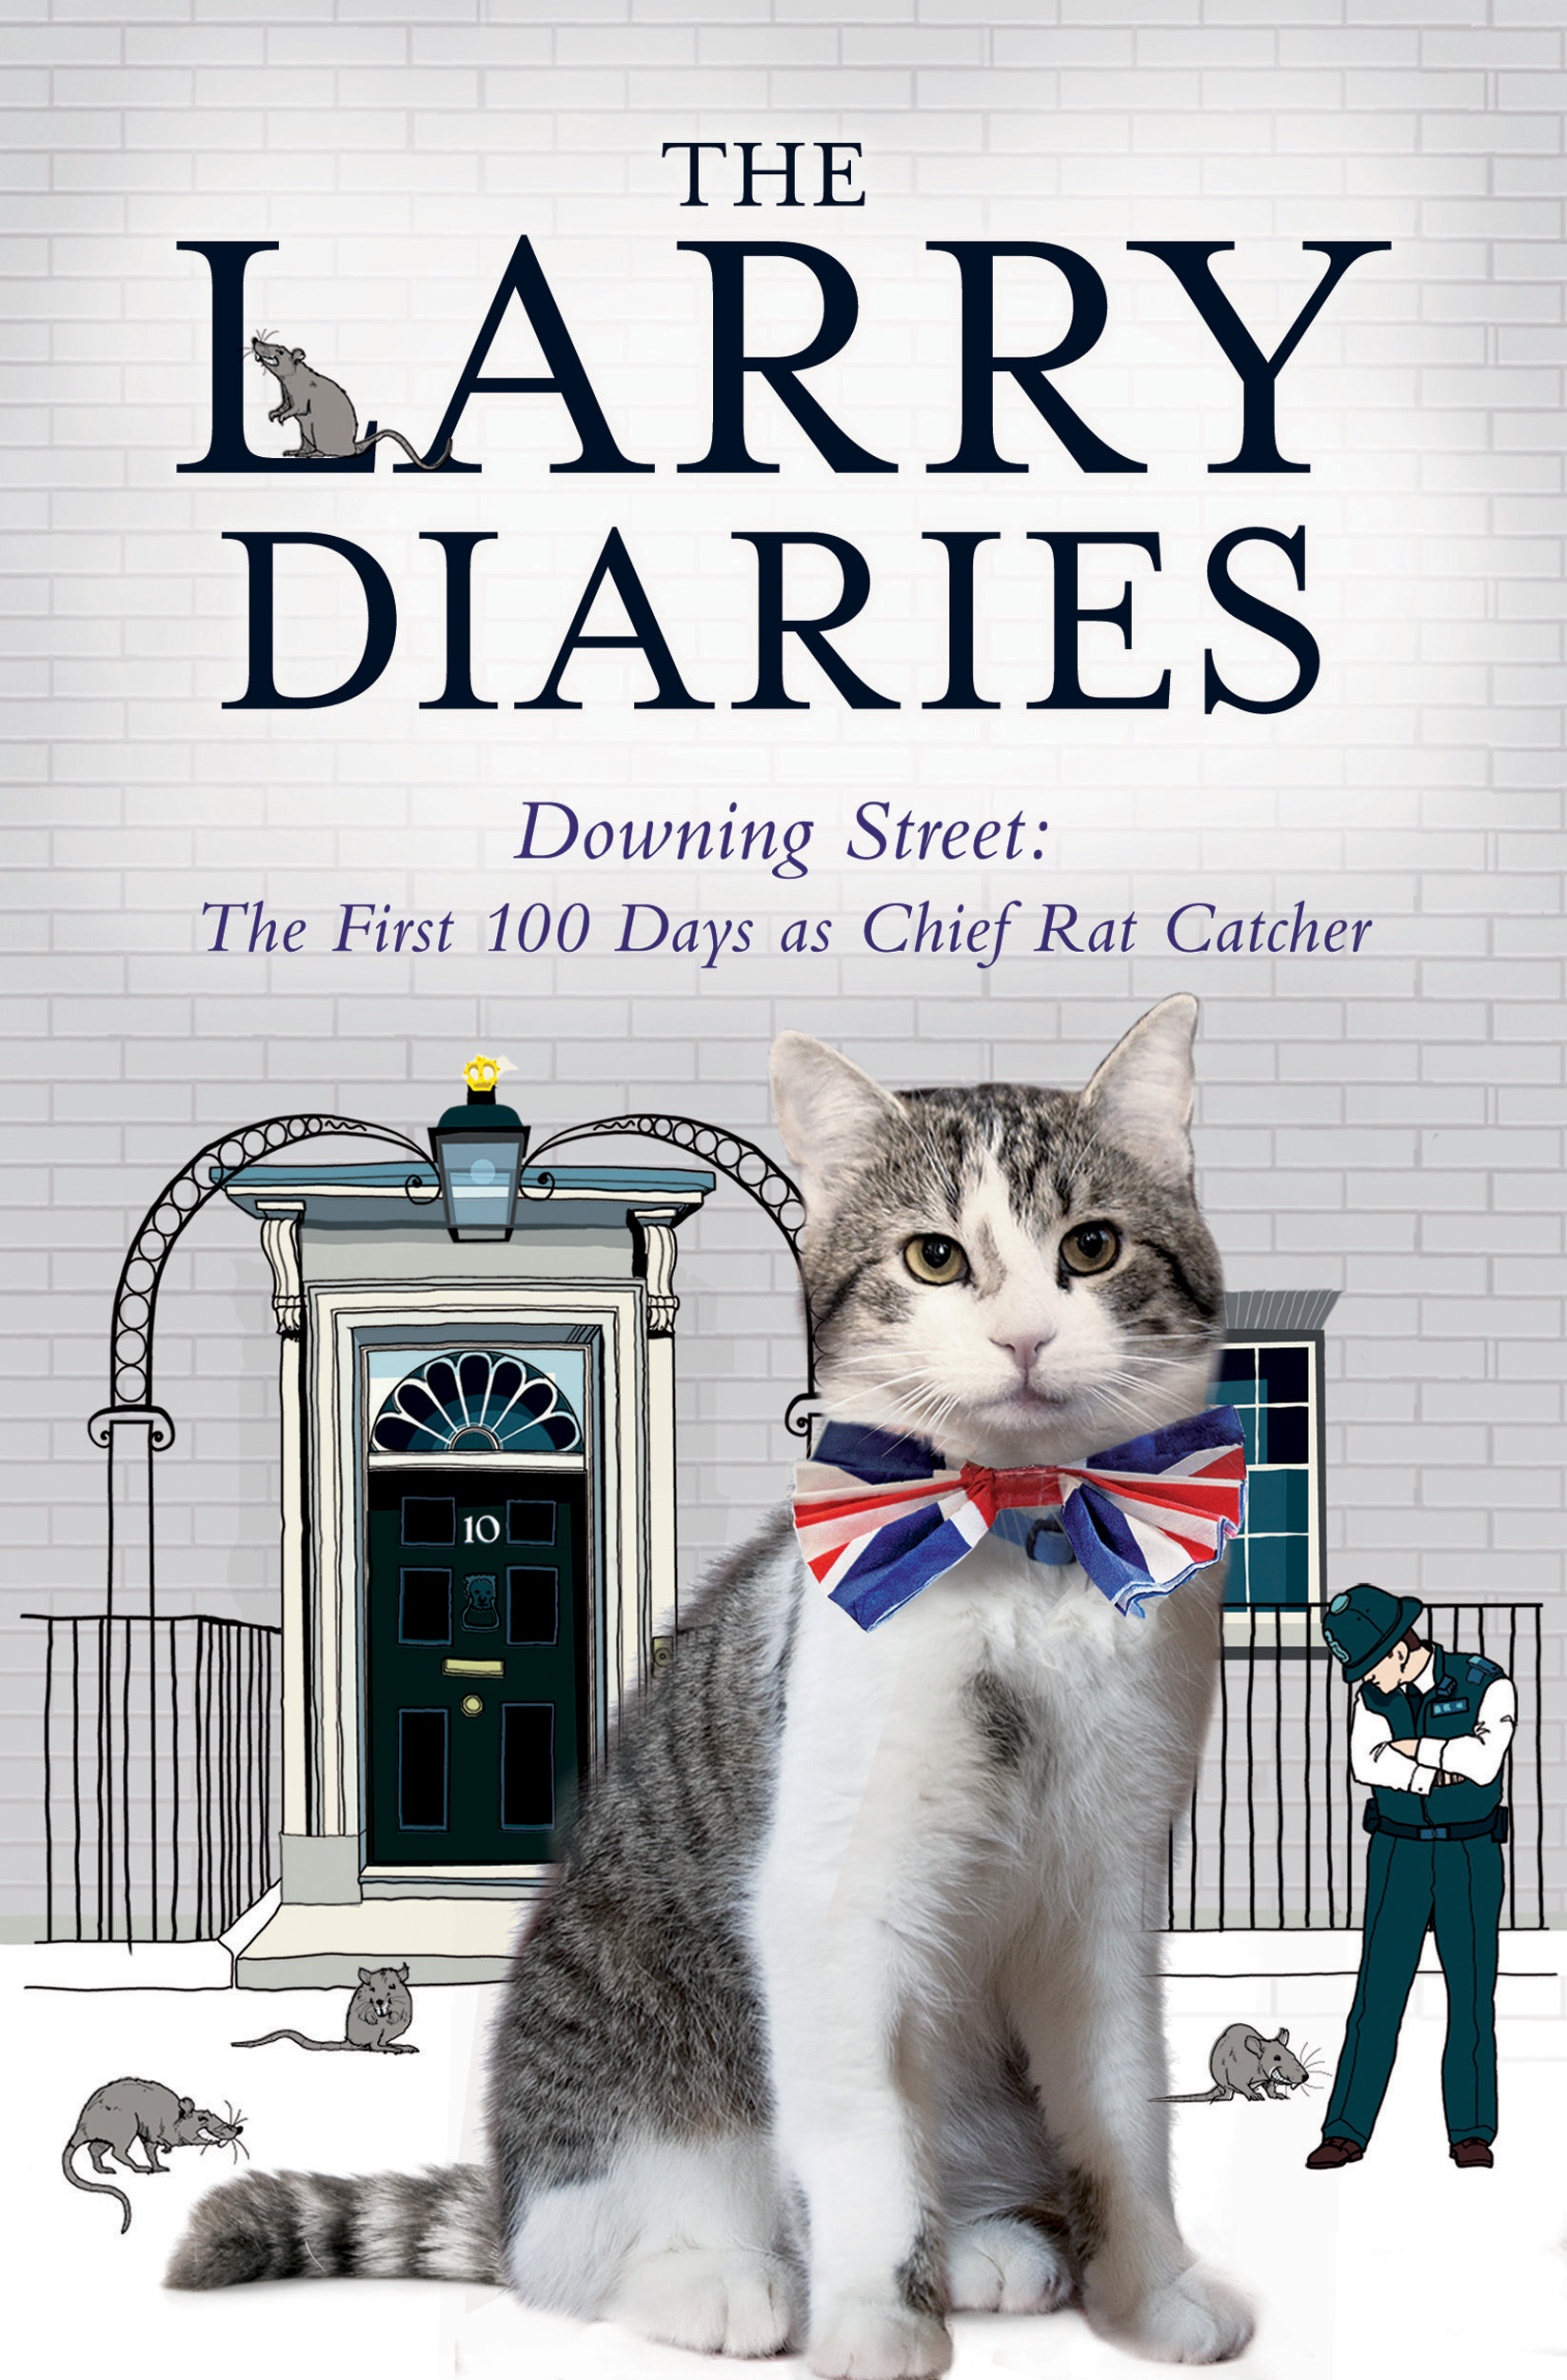 The larry diaries downing street the first 100 days ebook by cvr9780857207715 9780857207715 hr the larry diaries fandeluxe Document